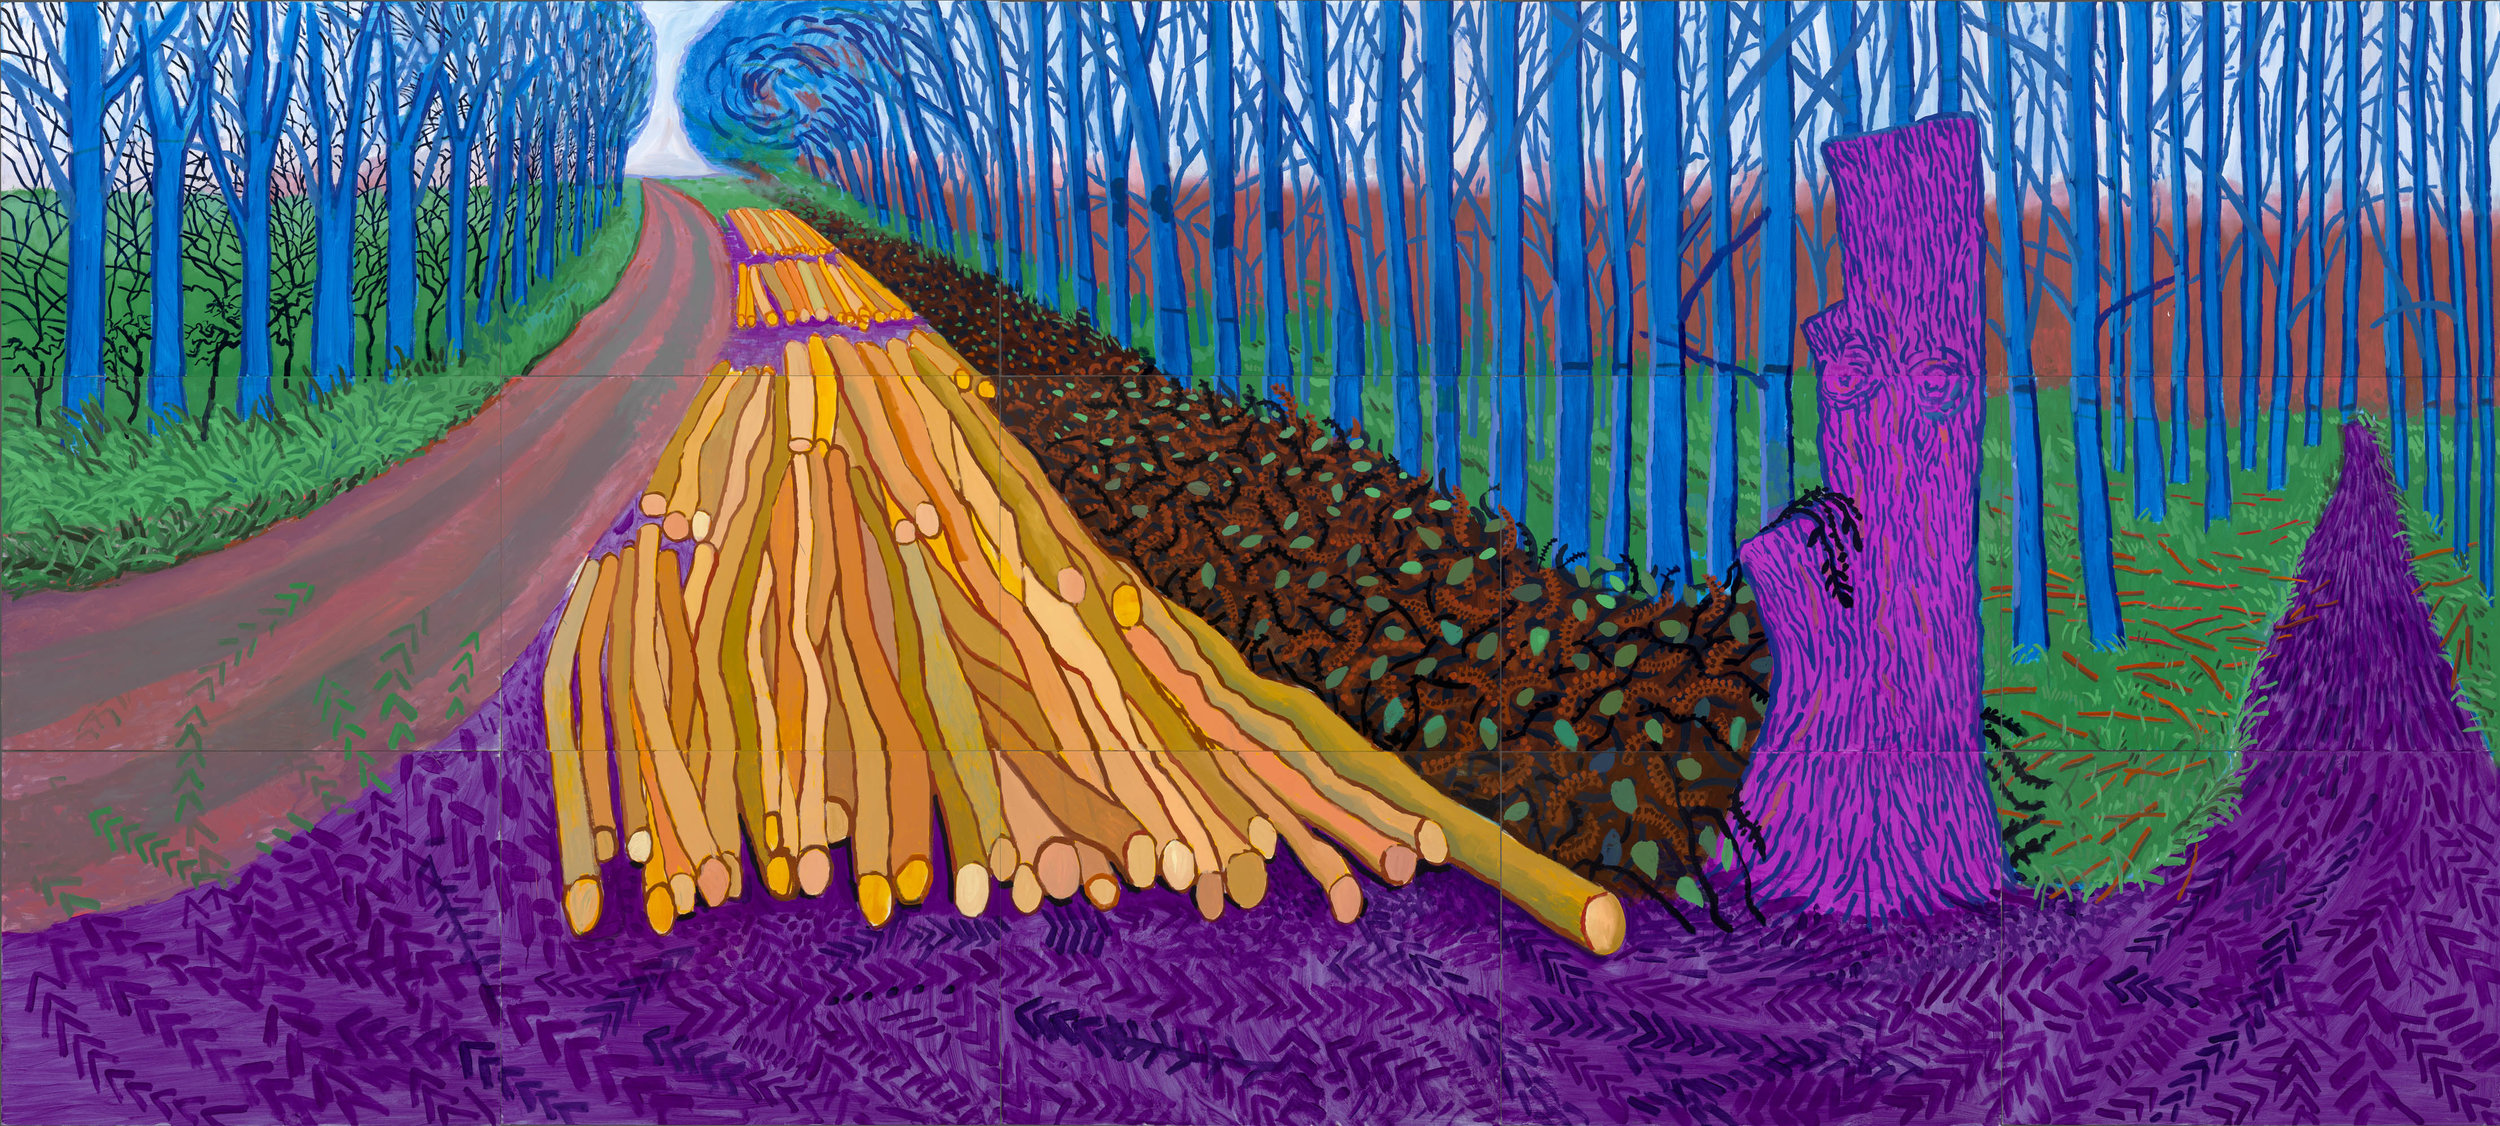 David Hockney: More Felled Trees on Woldgate, 2008.